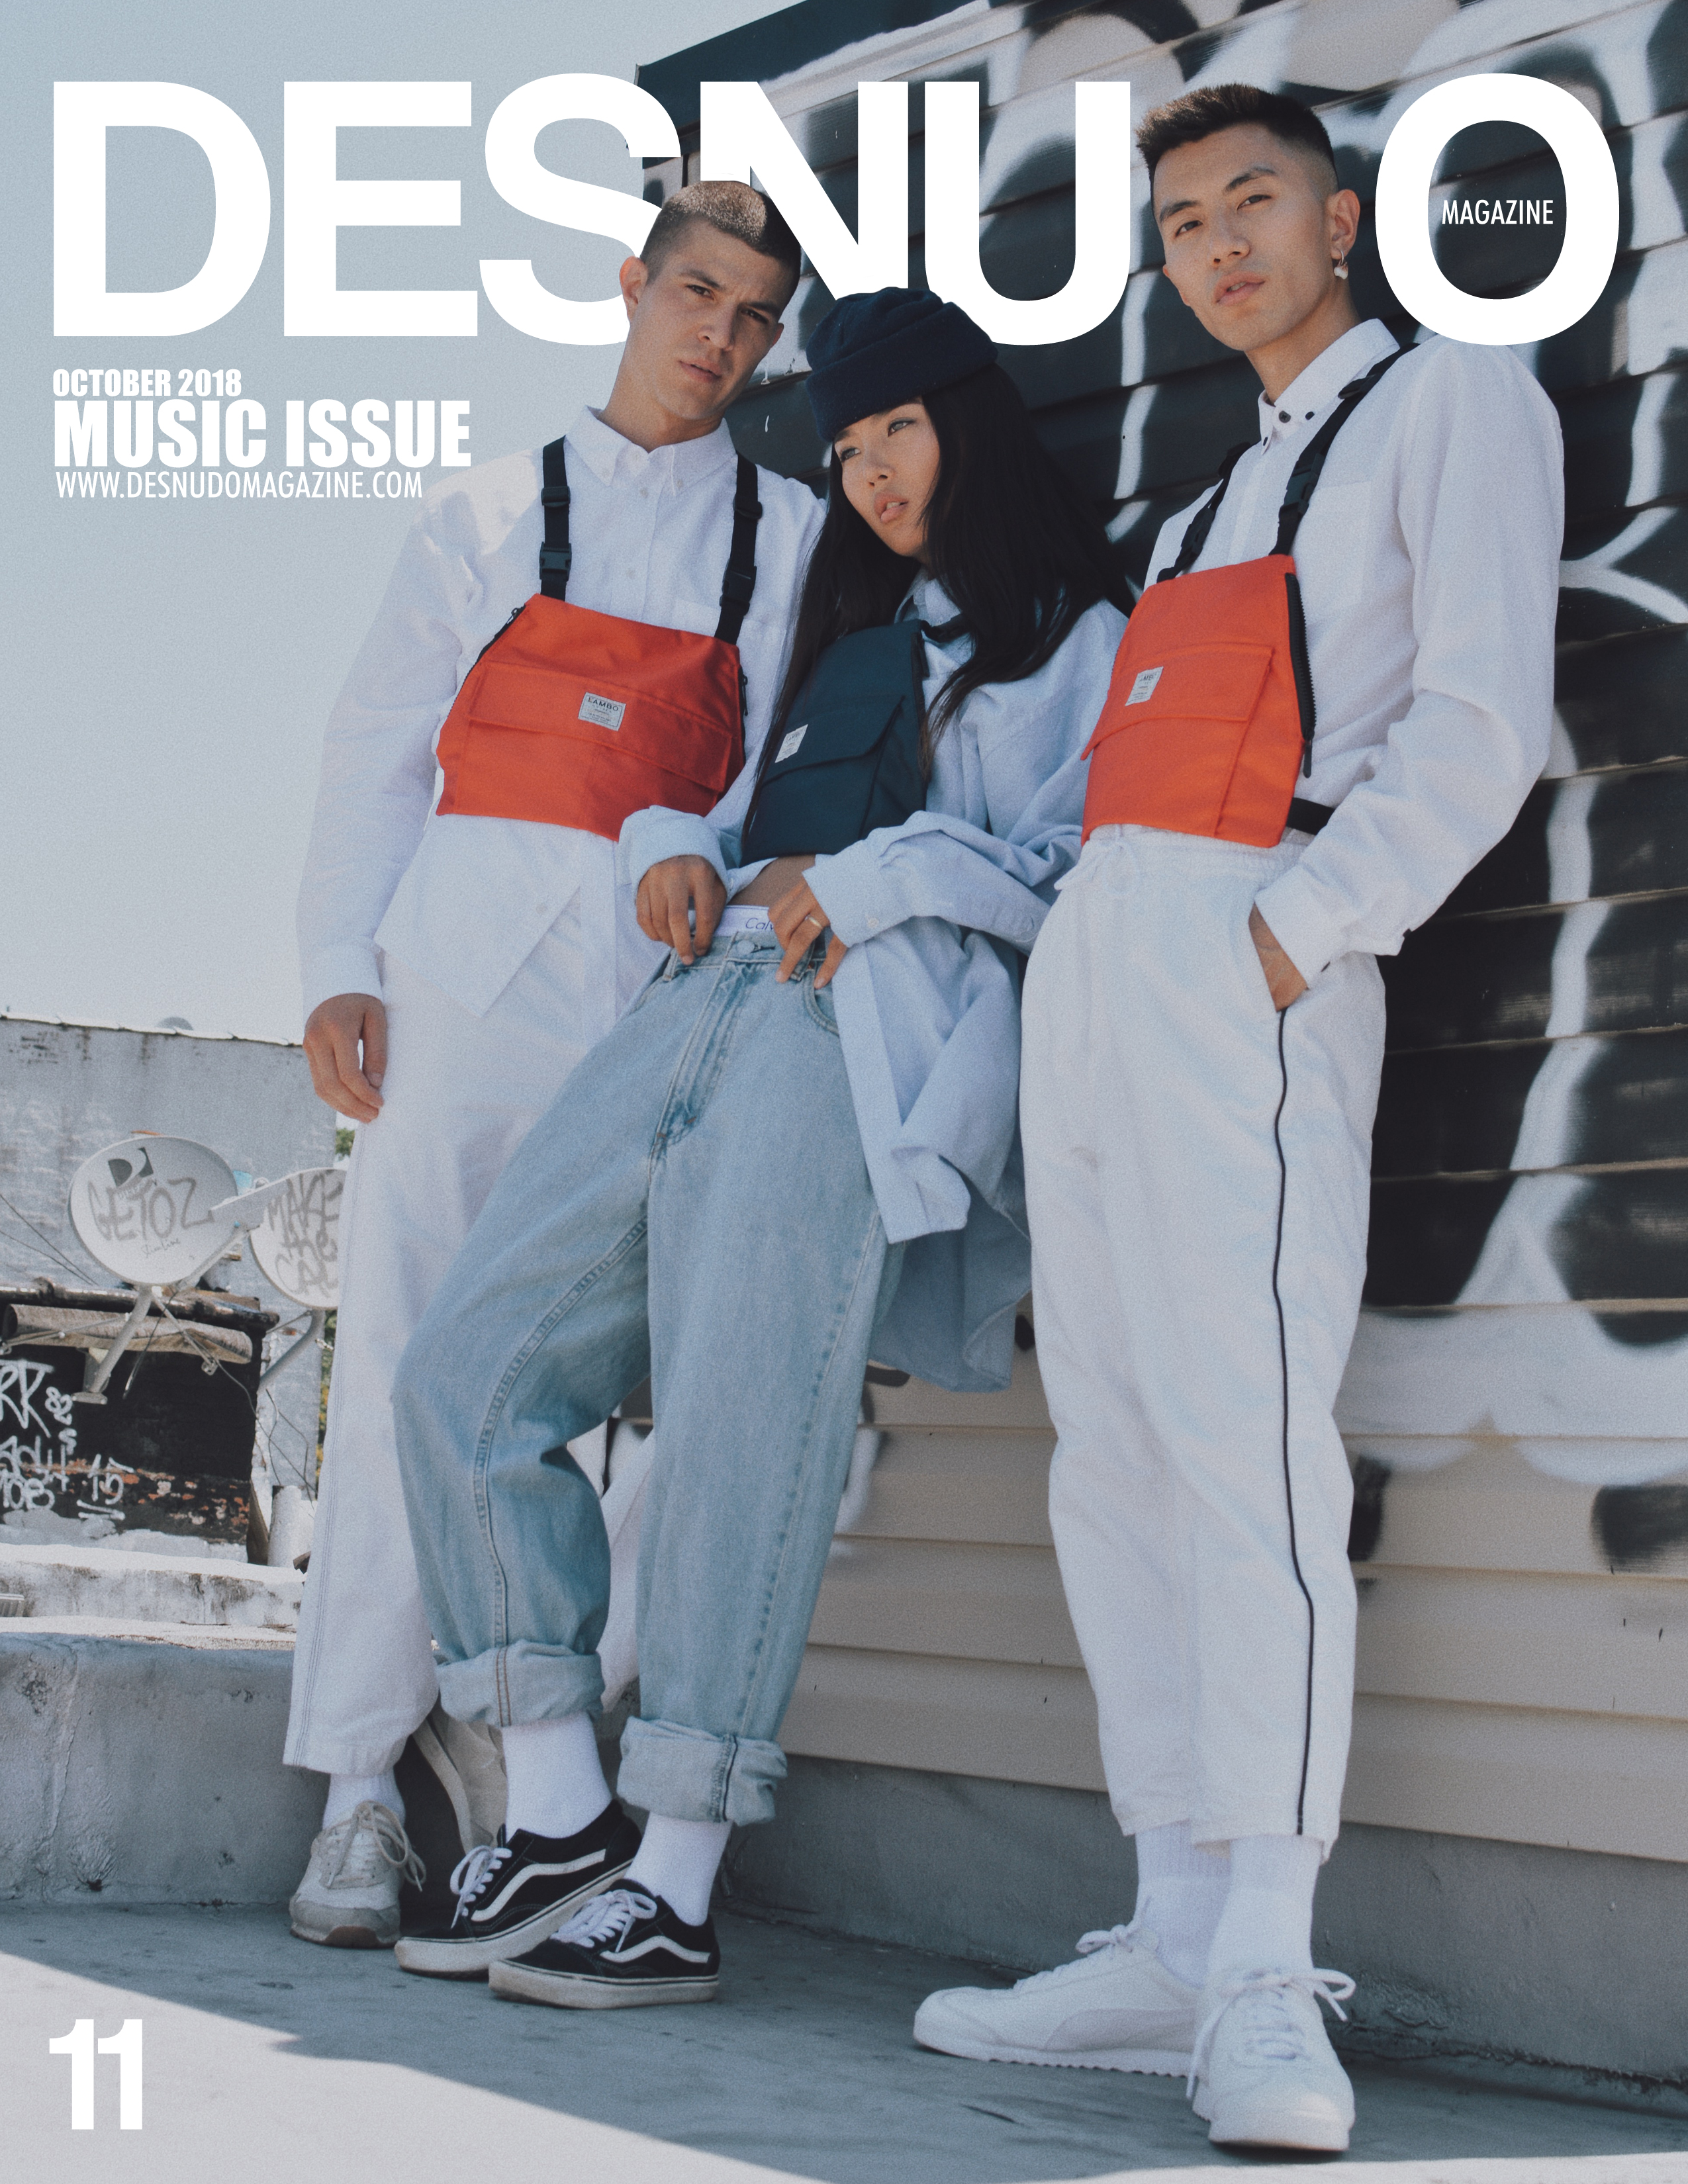 issue11_001